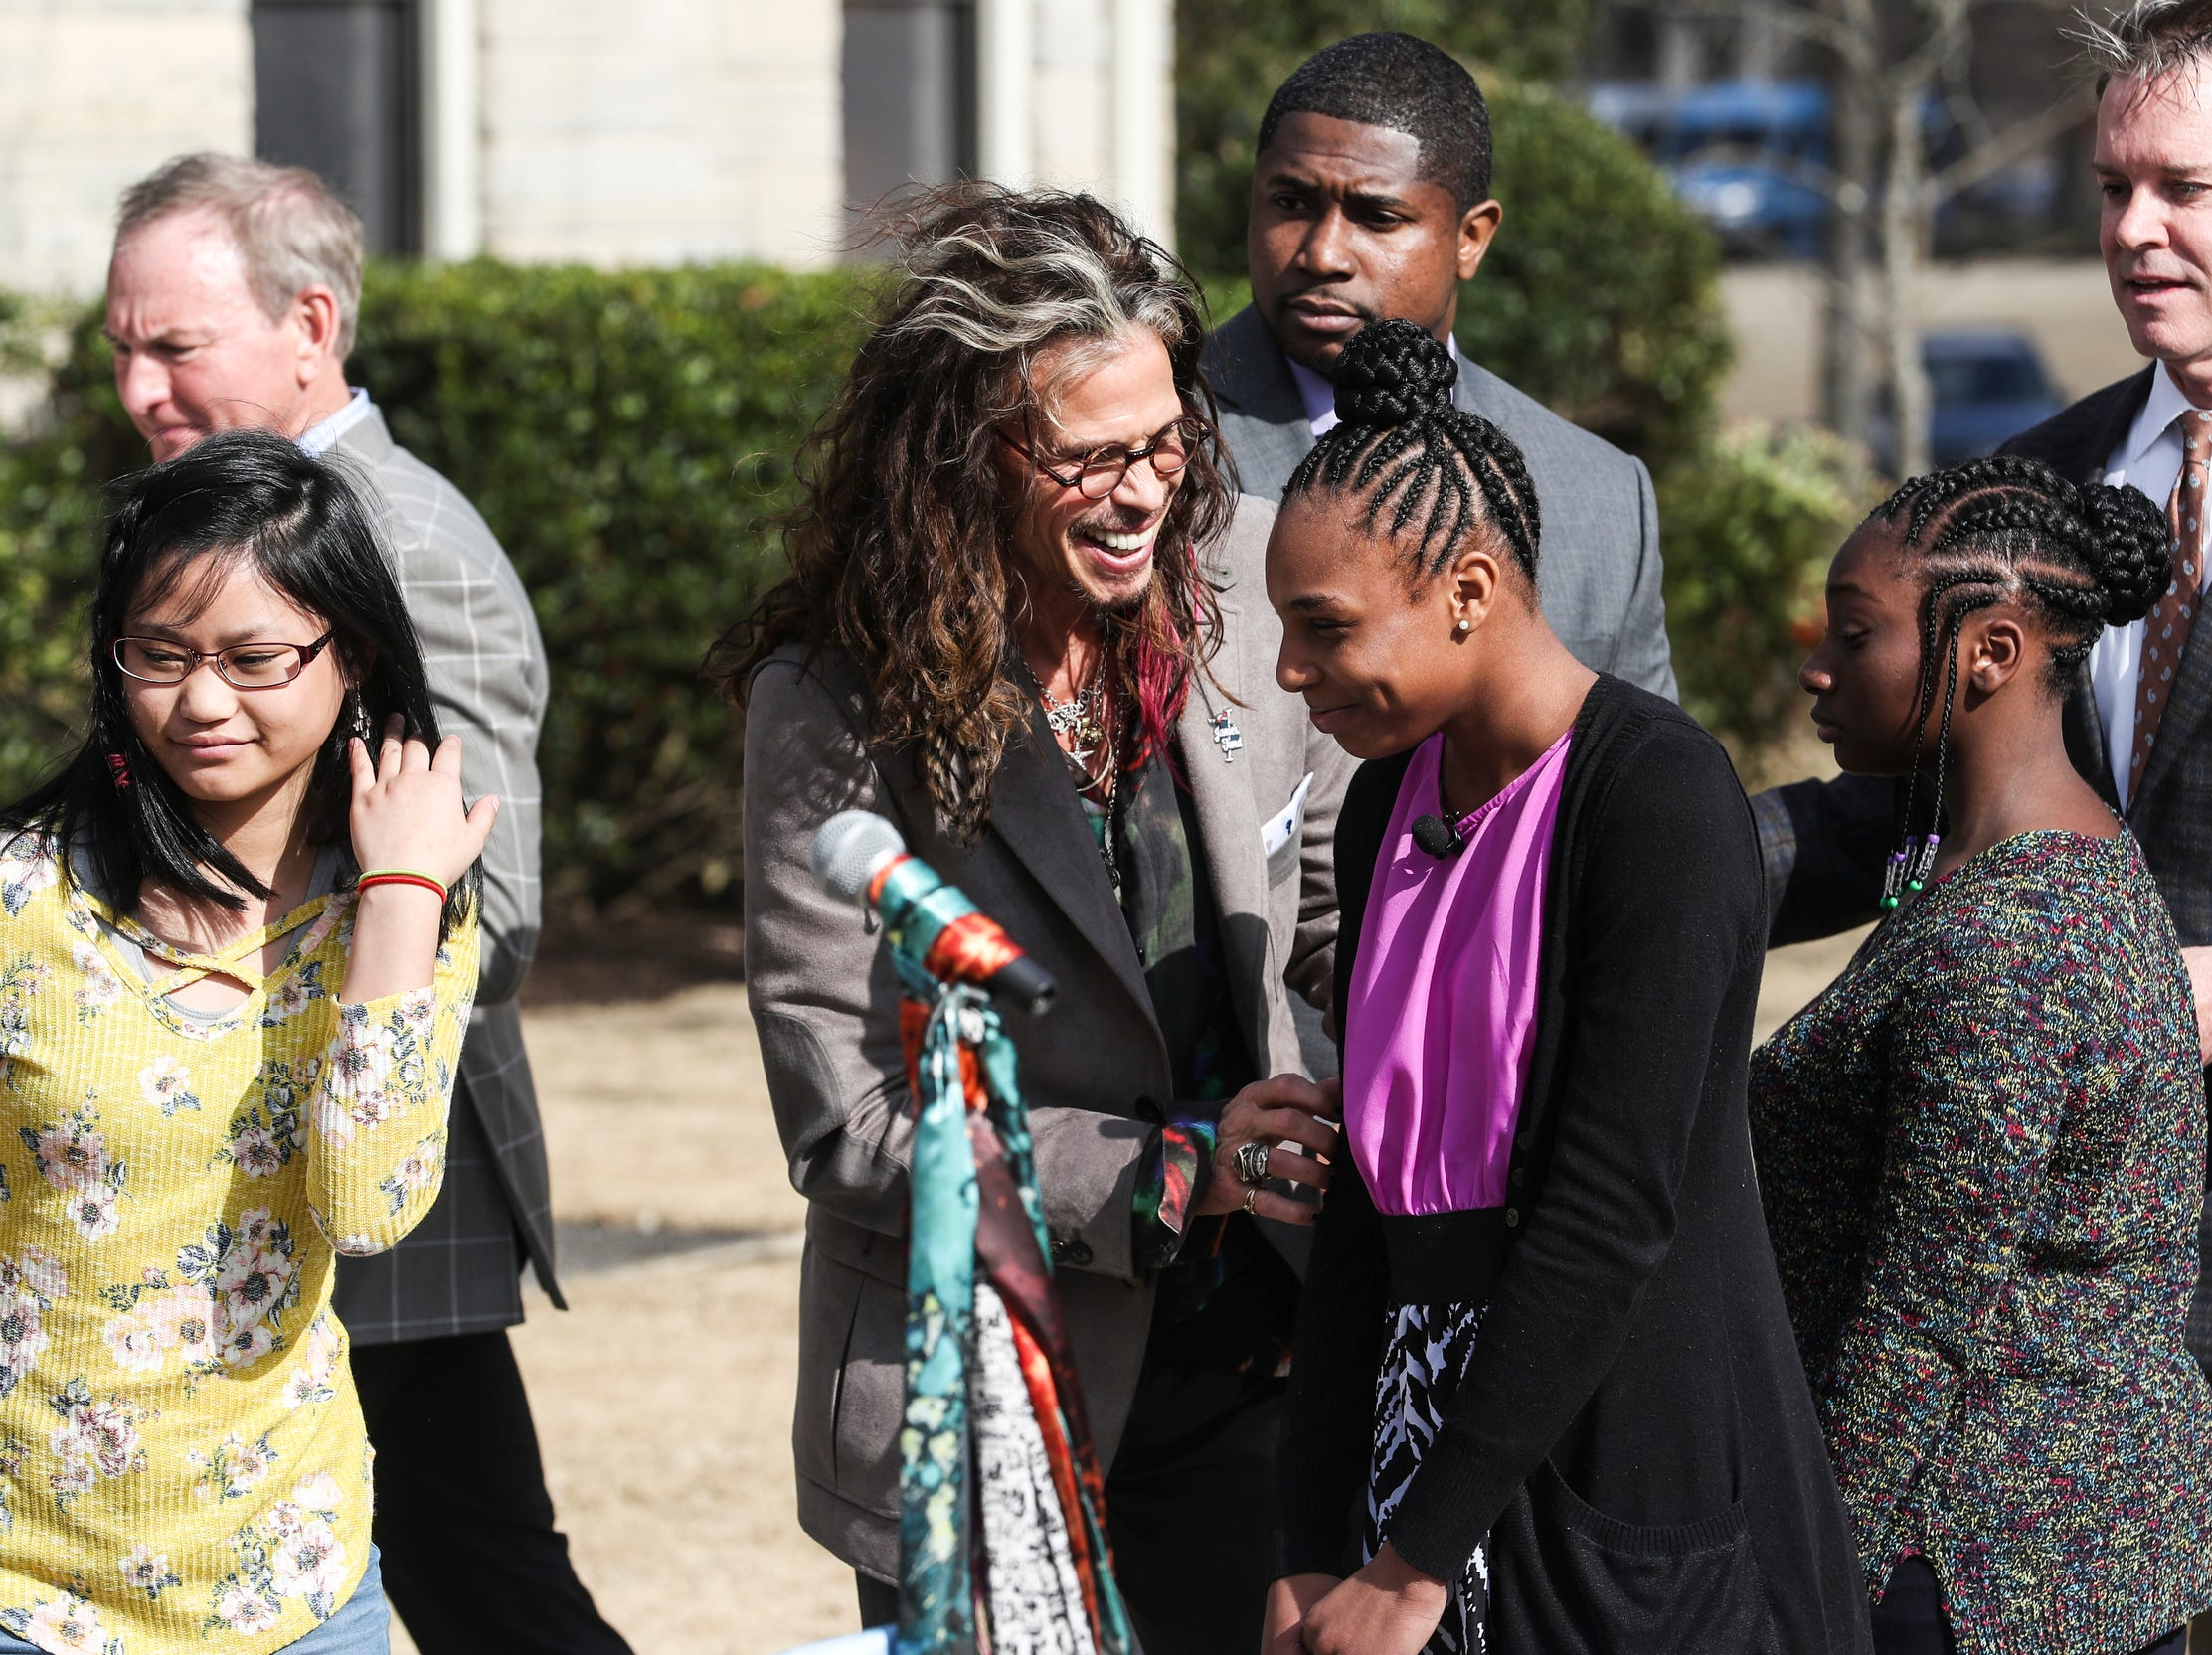 Singer Steven Tyler attends the scarf-cutting celebration Feb. 4, 2019, for Janie's House, a project between Tyler and Youth Villages to renovate a home for girls who have suffered abuse or neglect.